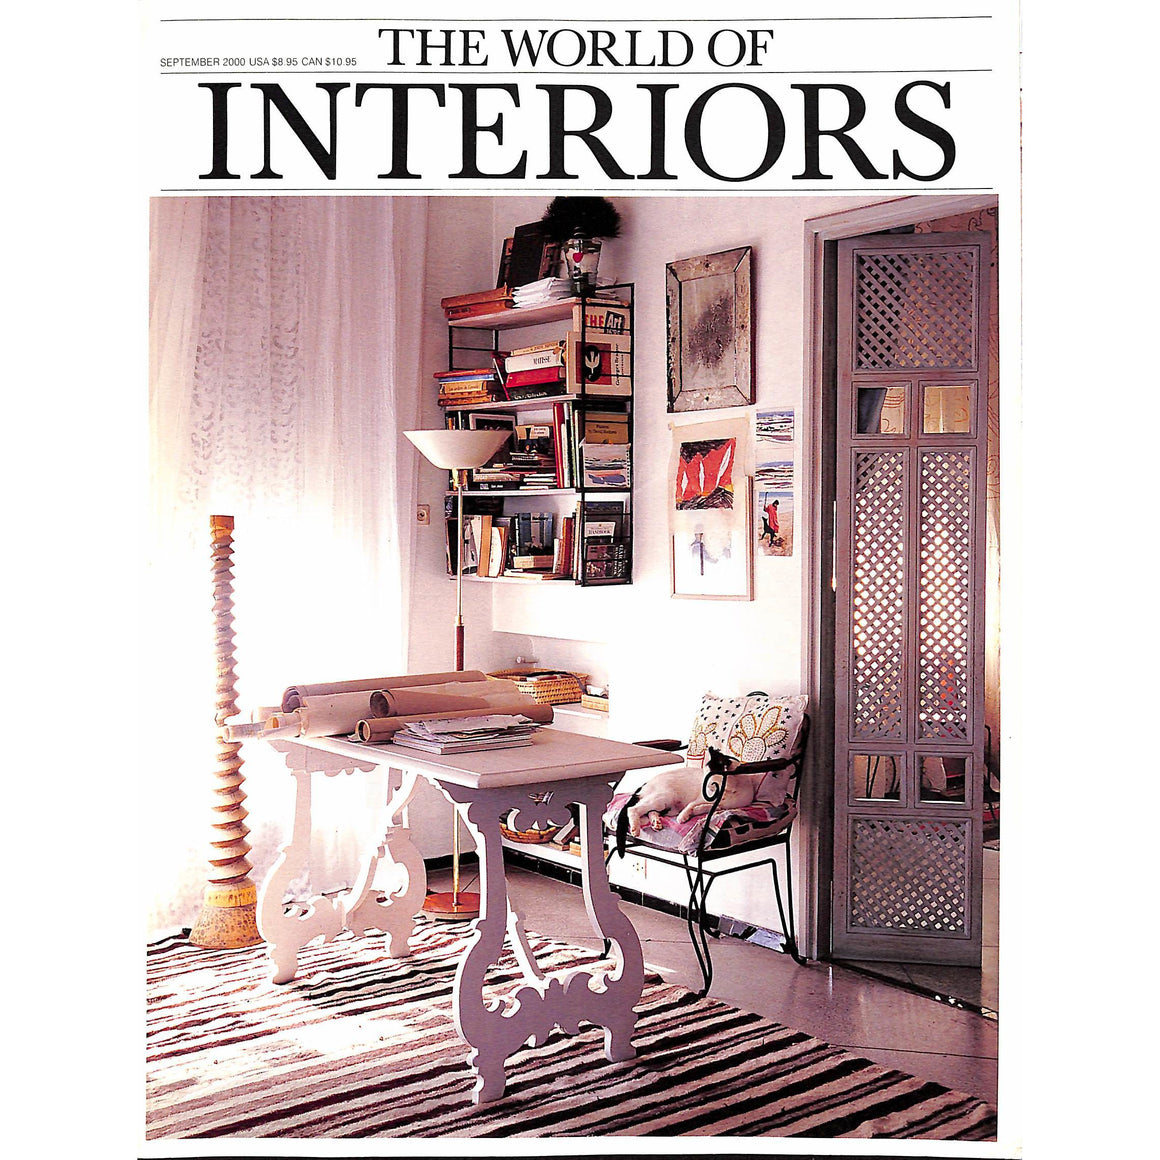 The World of Interiors September 2000